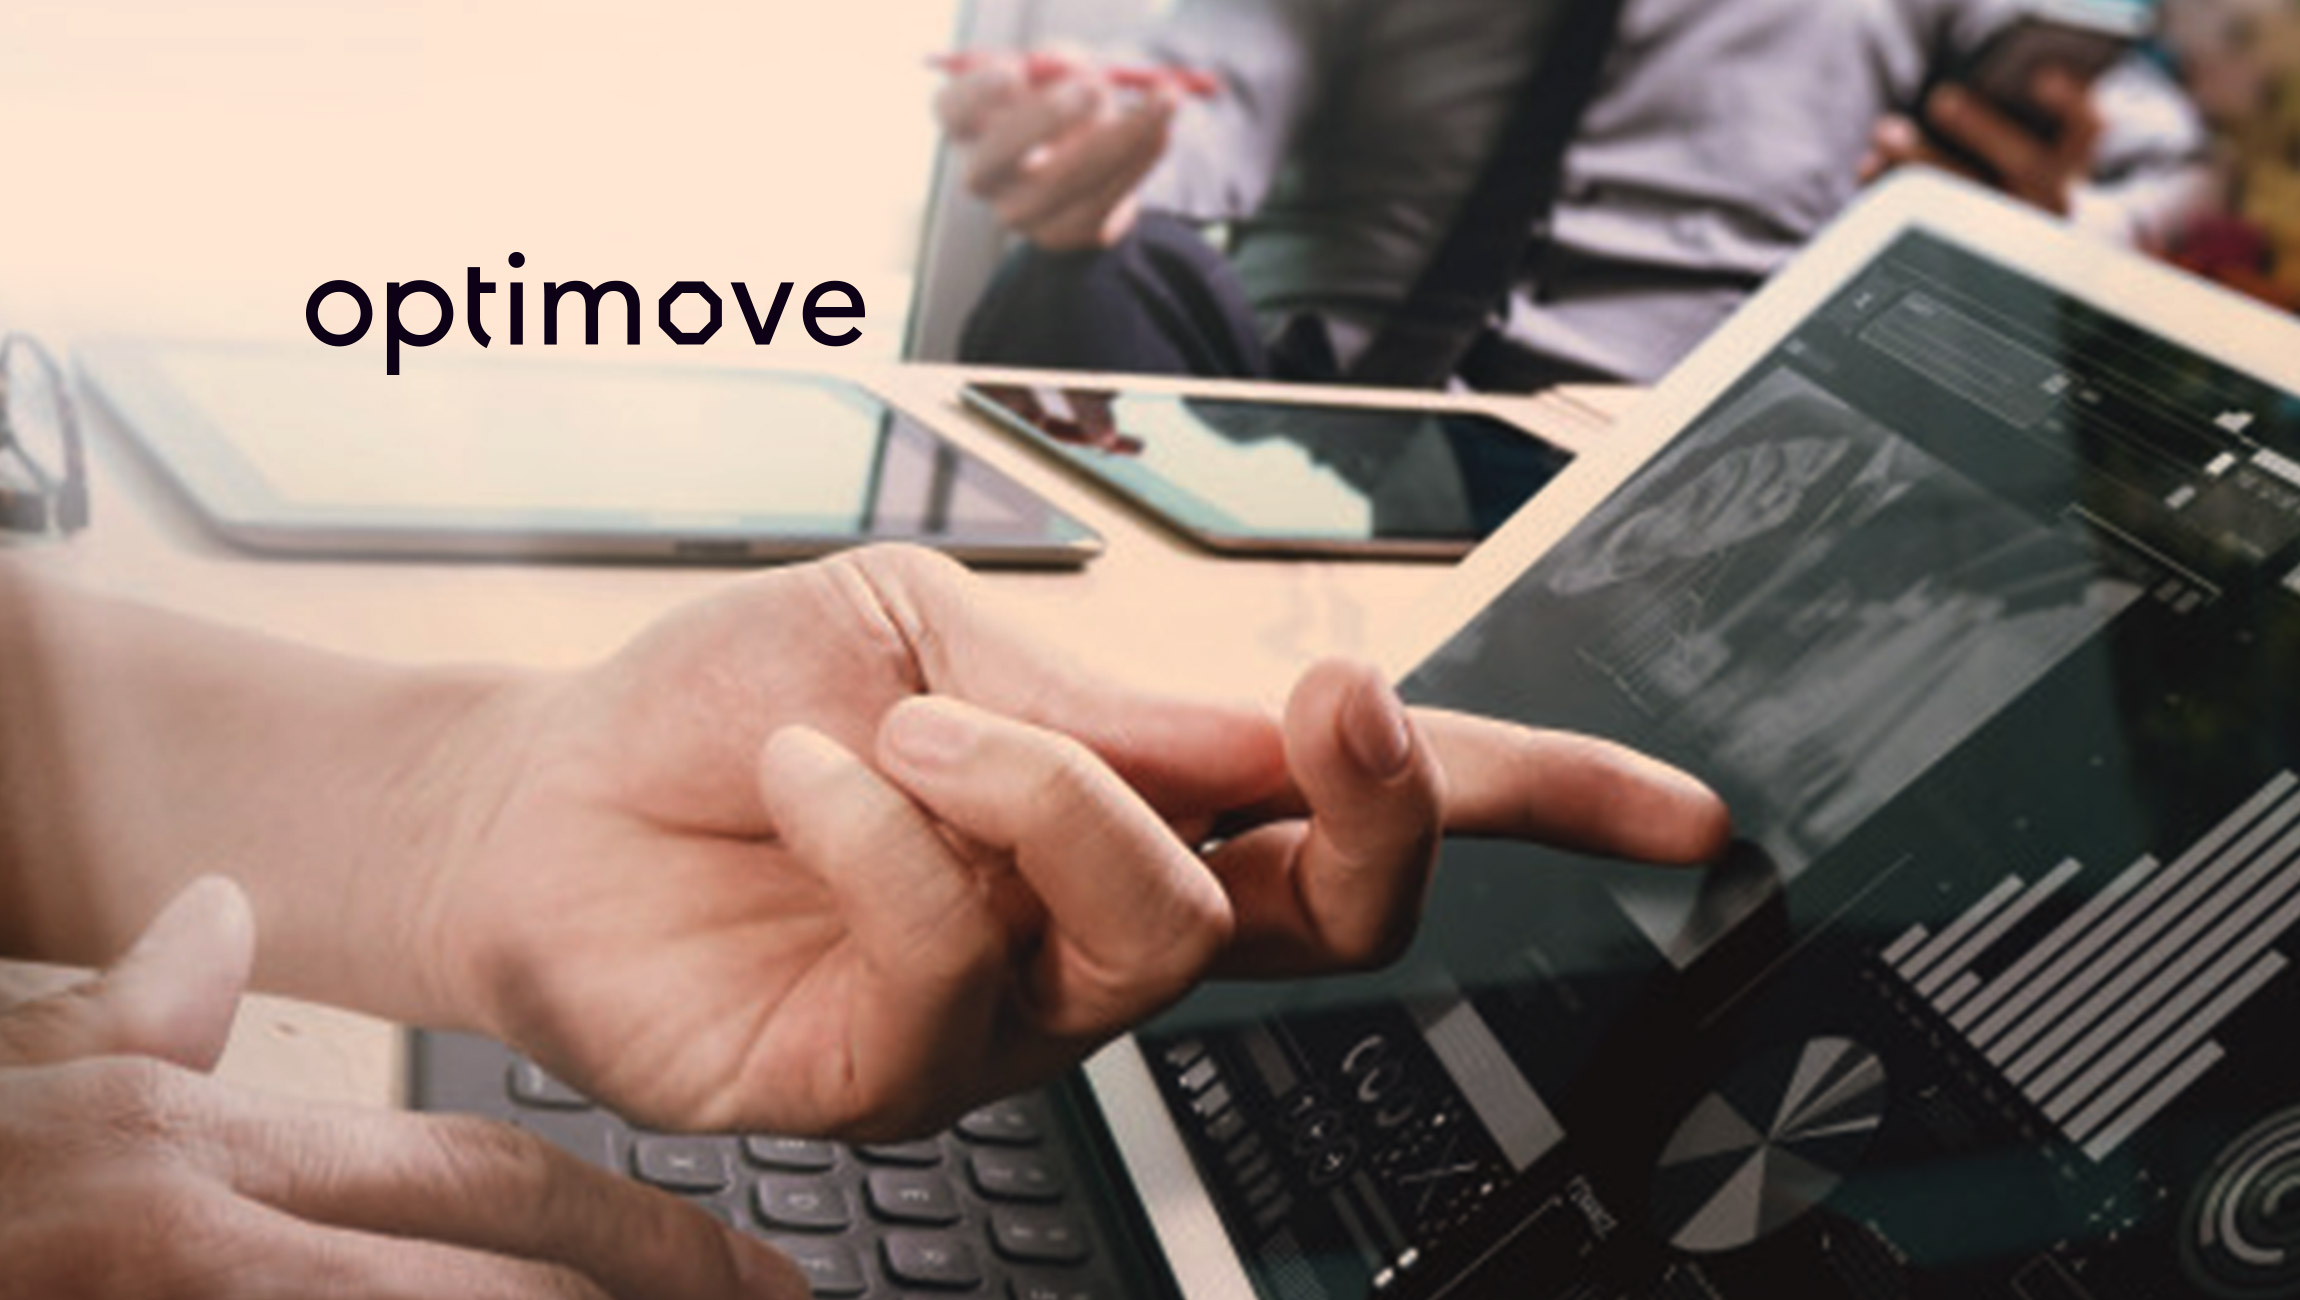 Optimove Streams, First Measurement Tool To Give Marketers Insight Into Financial Results From The Combination Of Realtime And Pre-Scheduled Campaigns